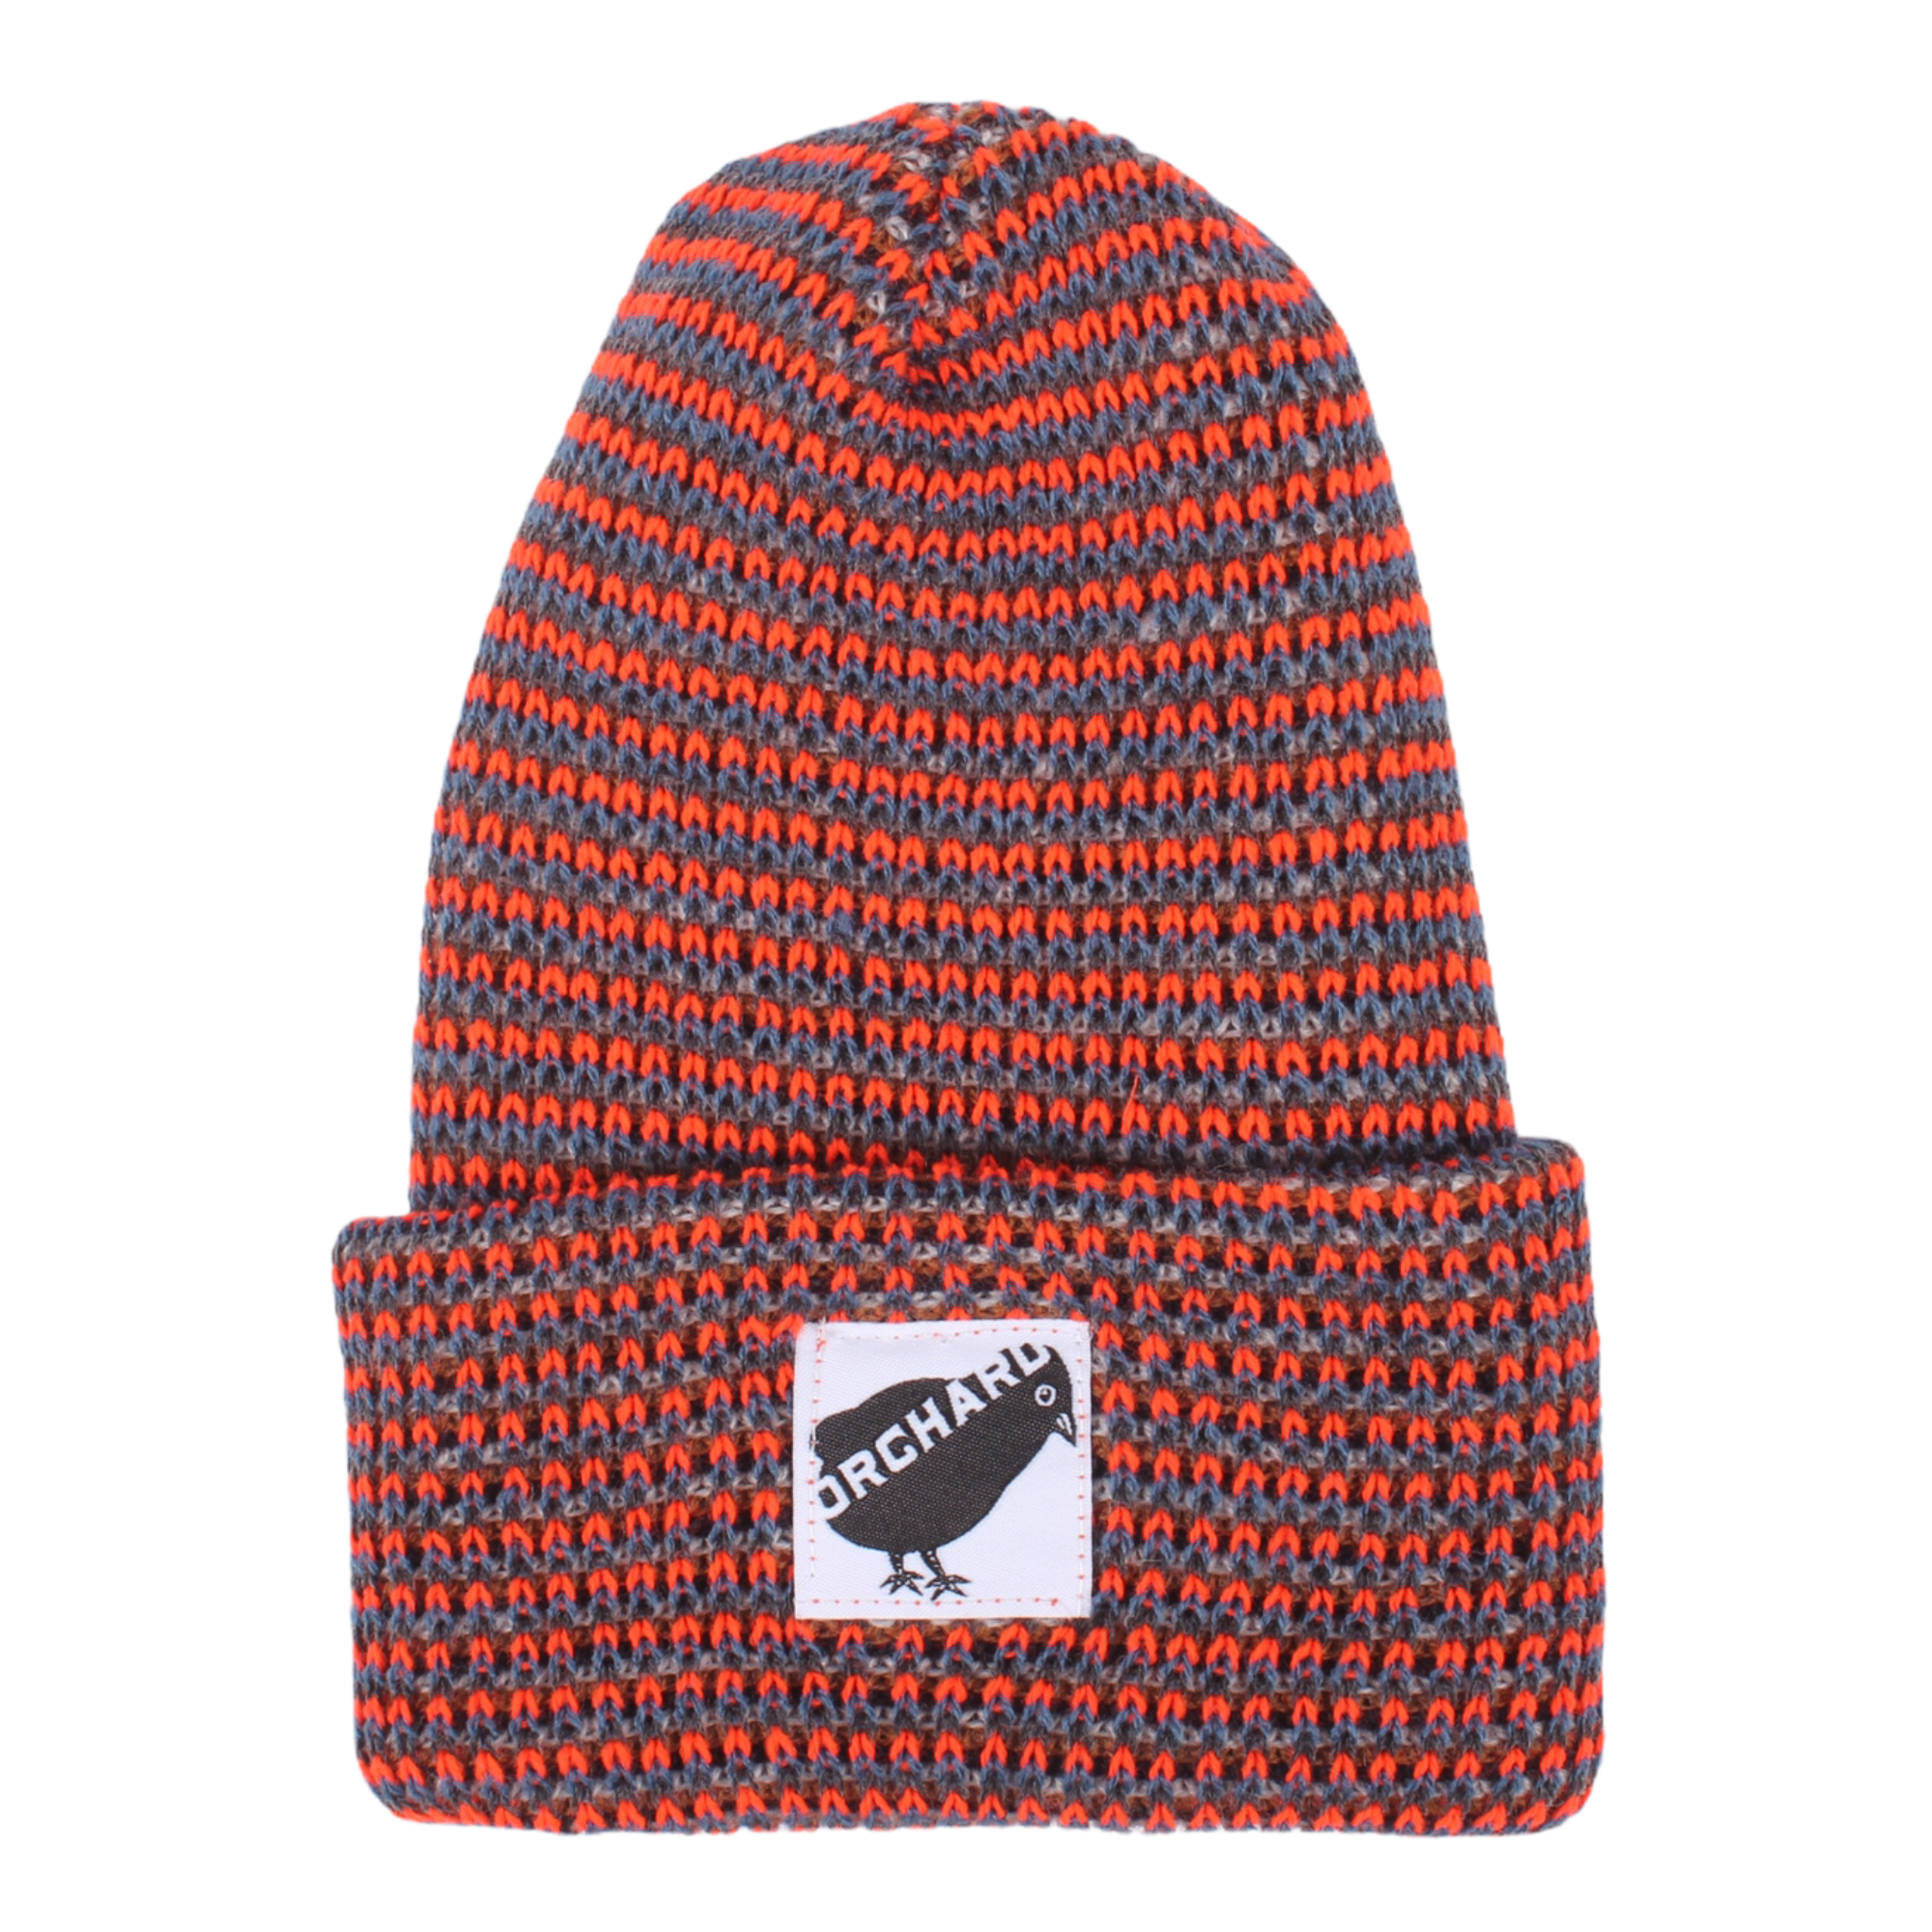 Orchard Black Bird Watch Beanie Orange/Blue/Grey